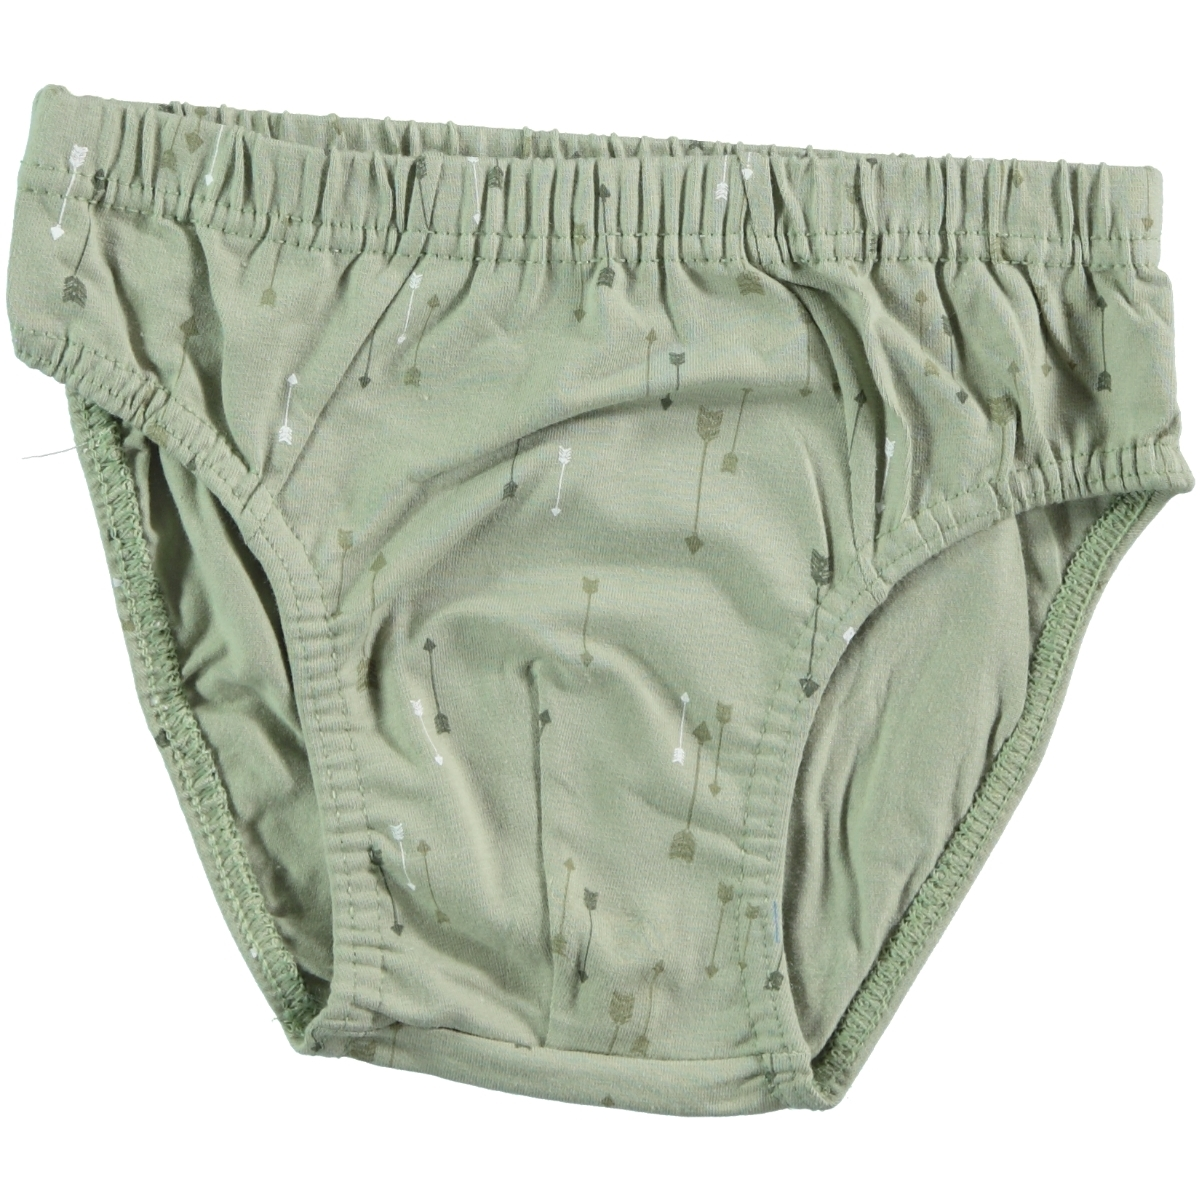 Donella The Ages Of 2-10 Panties Boy In Khaki, Ecru